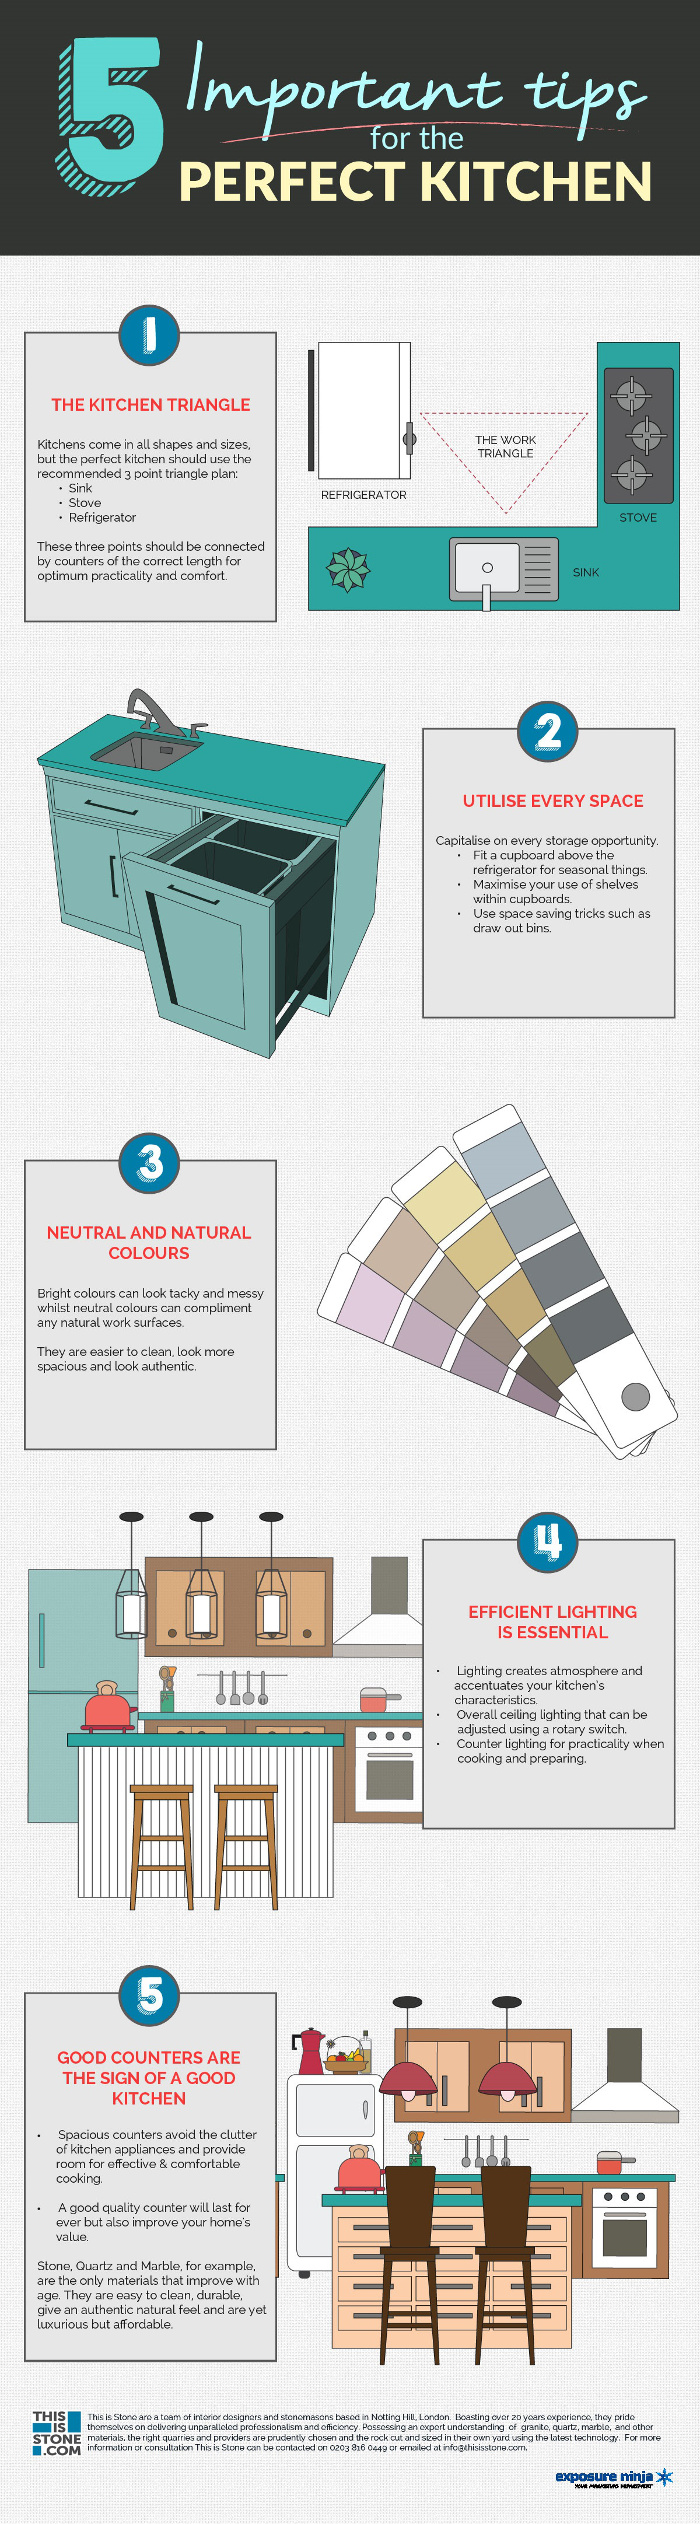 5 Important Tips For The Kitchen Infographic